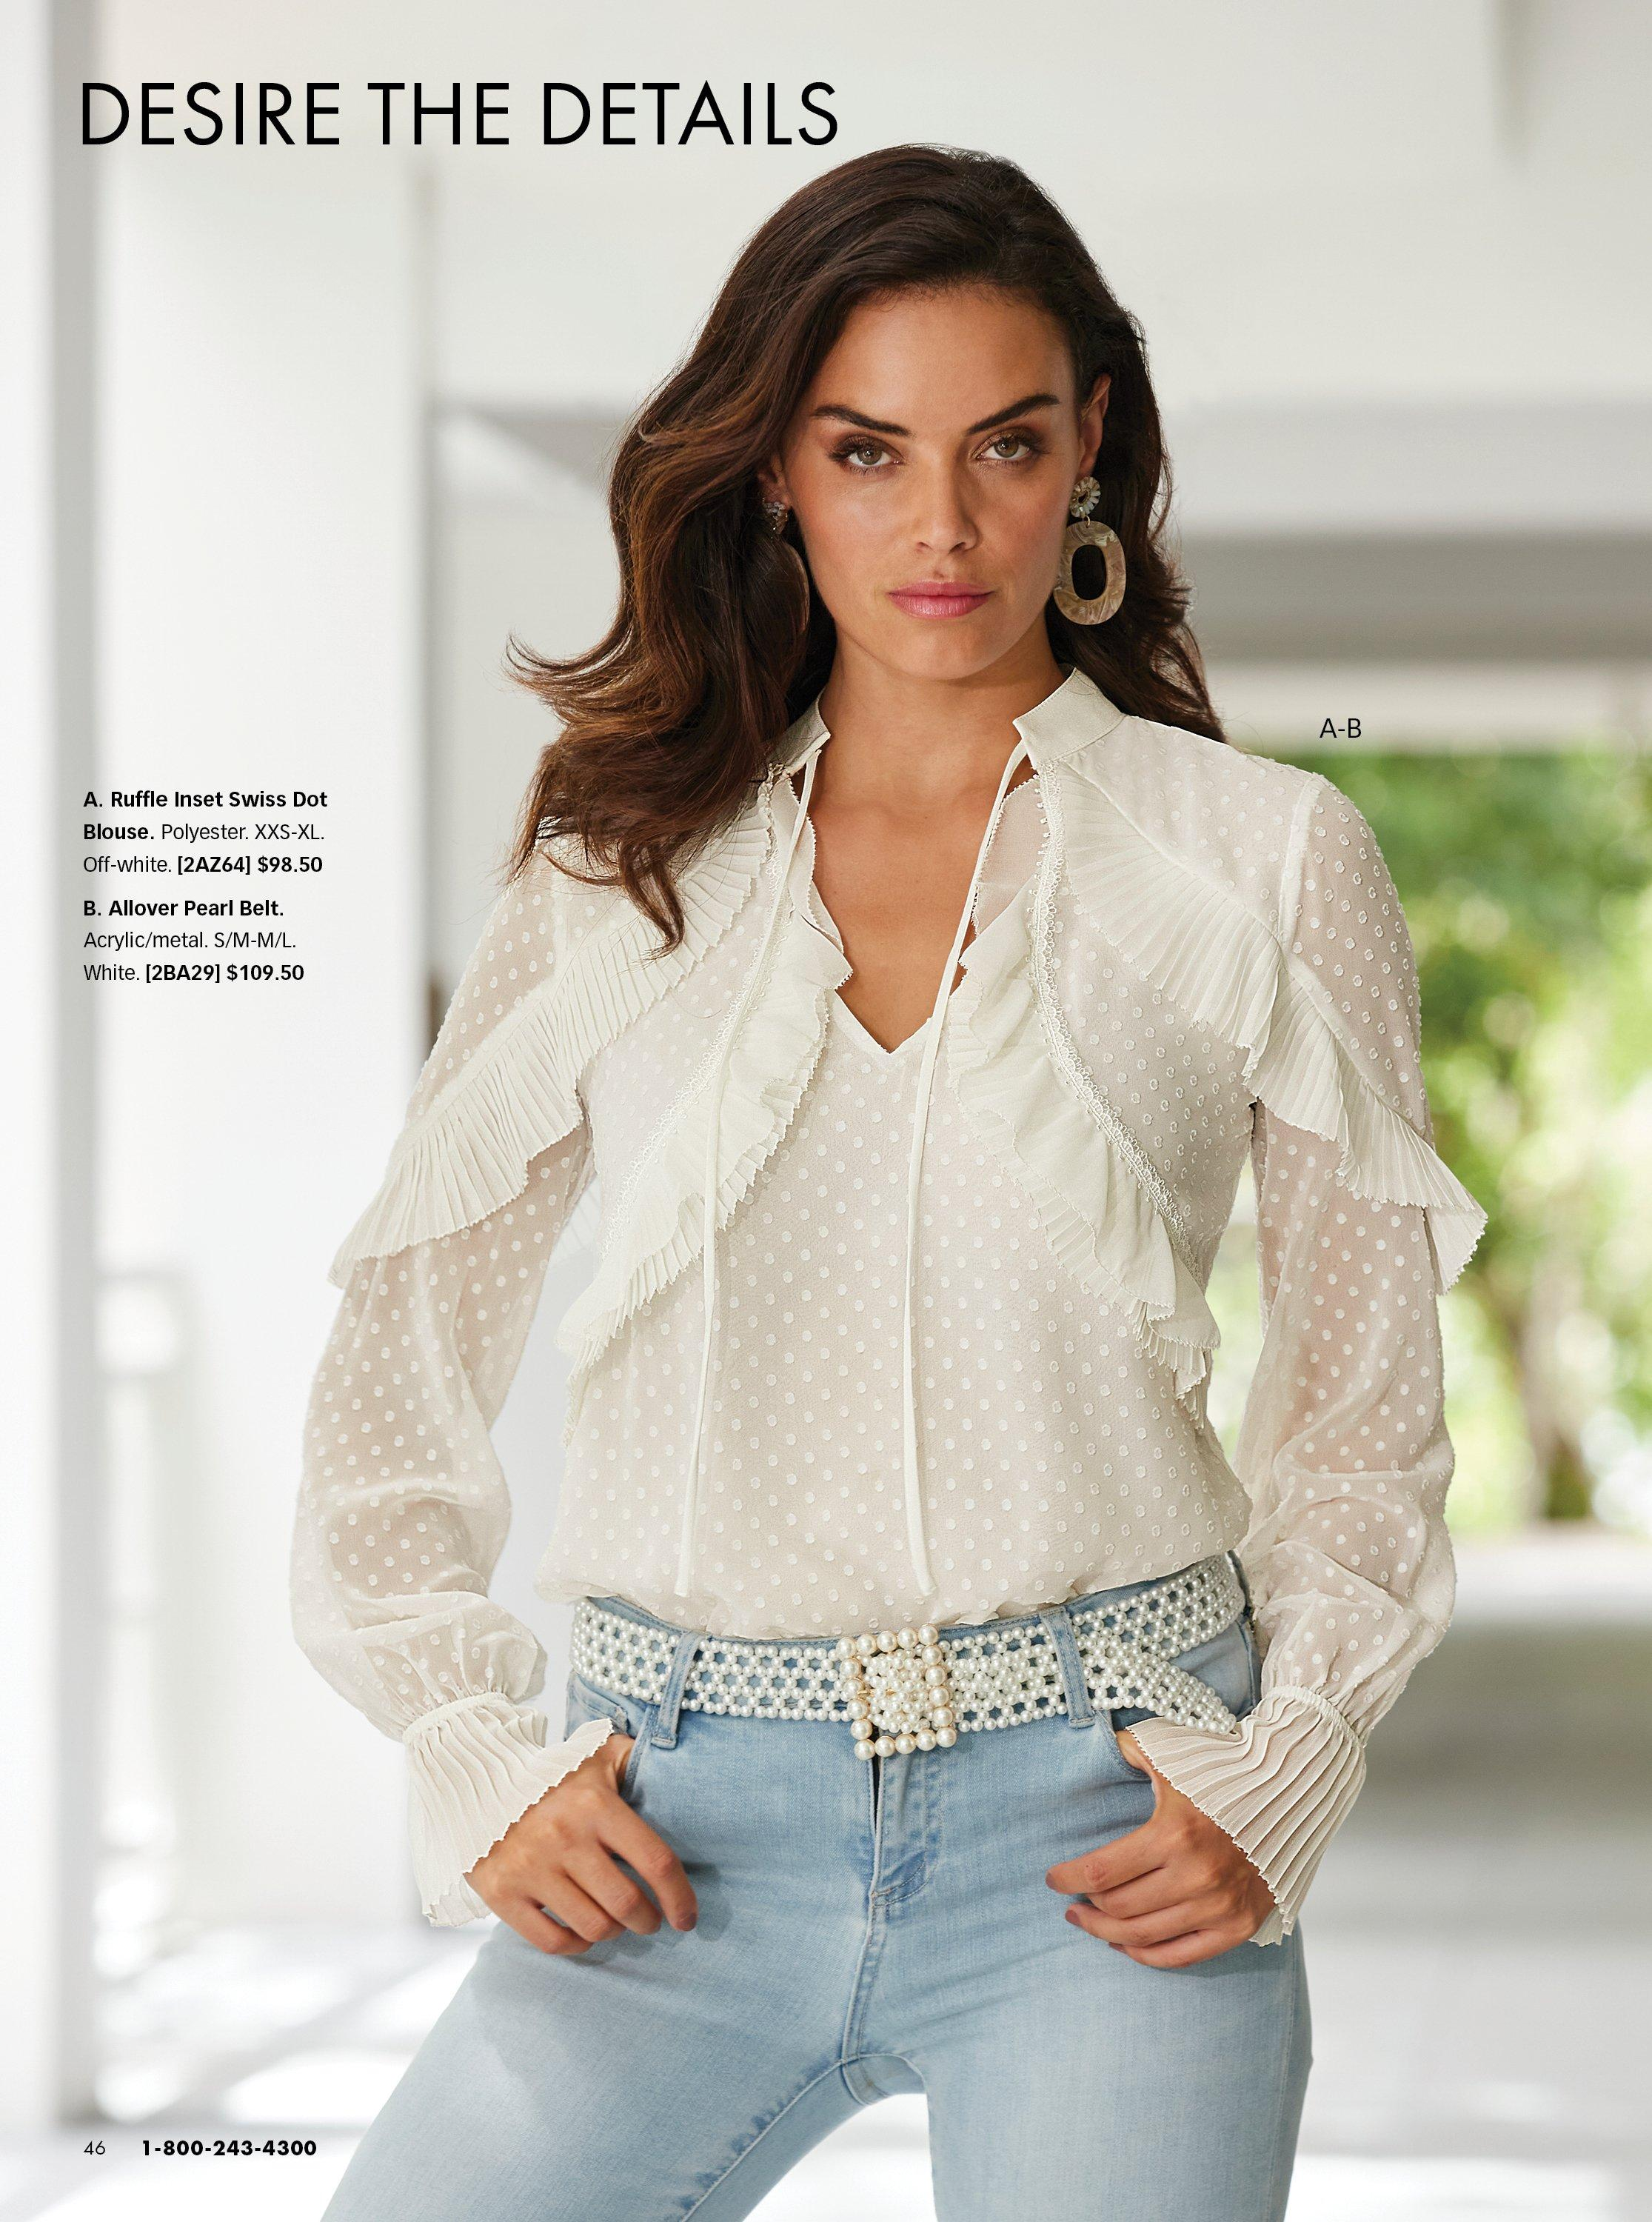 model wearing a white ruffle long sleeve top, pearl embellished belt, and jeans.